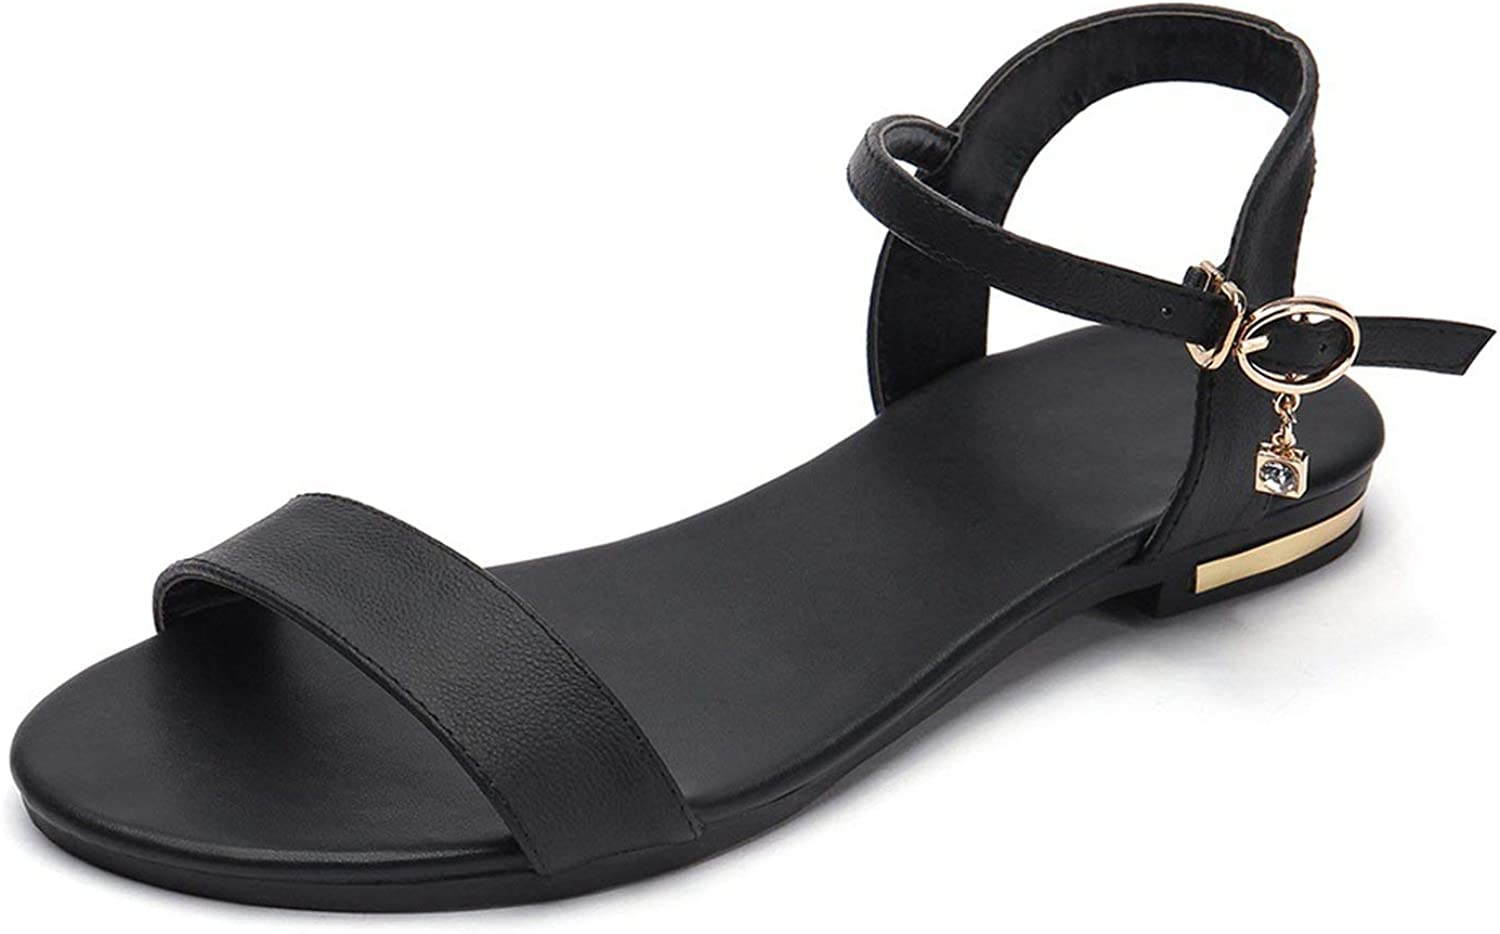 Lewis Pitman Plus Size 34-46 Leather Sandals Women shoes Flat Sandals Cow Leather Summer Rhinestone